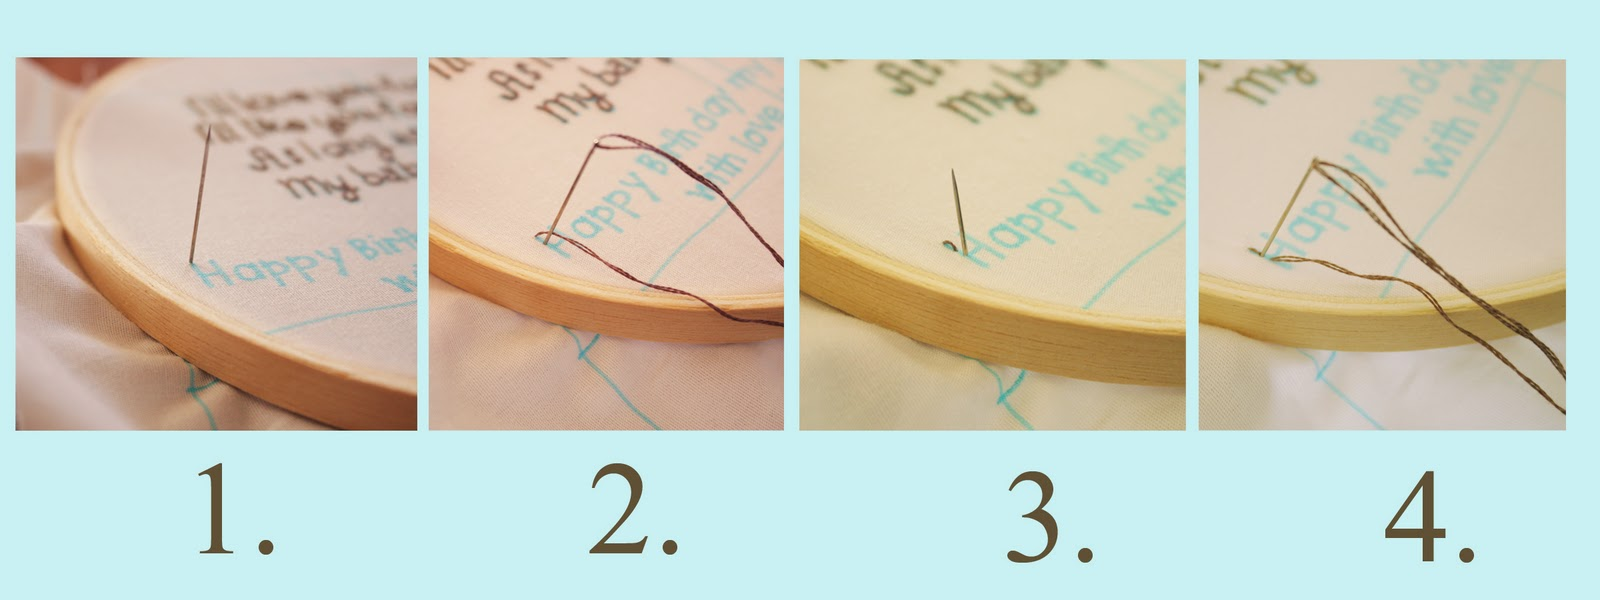 Put An Embroidery Hoop Around The Block Stitch The Text Using A Simple  Backstitch Below Is A Step By Step Of How To Do The Stitch Click To  Enlarge